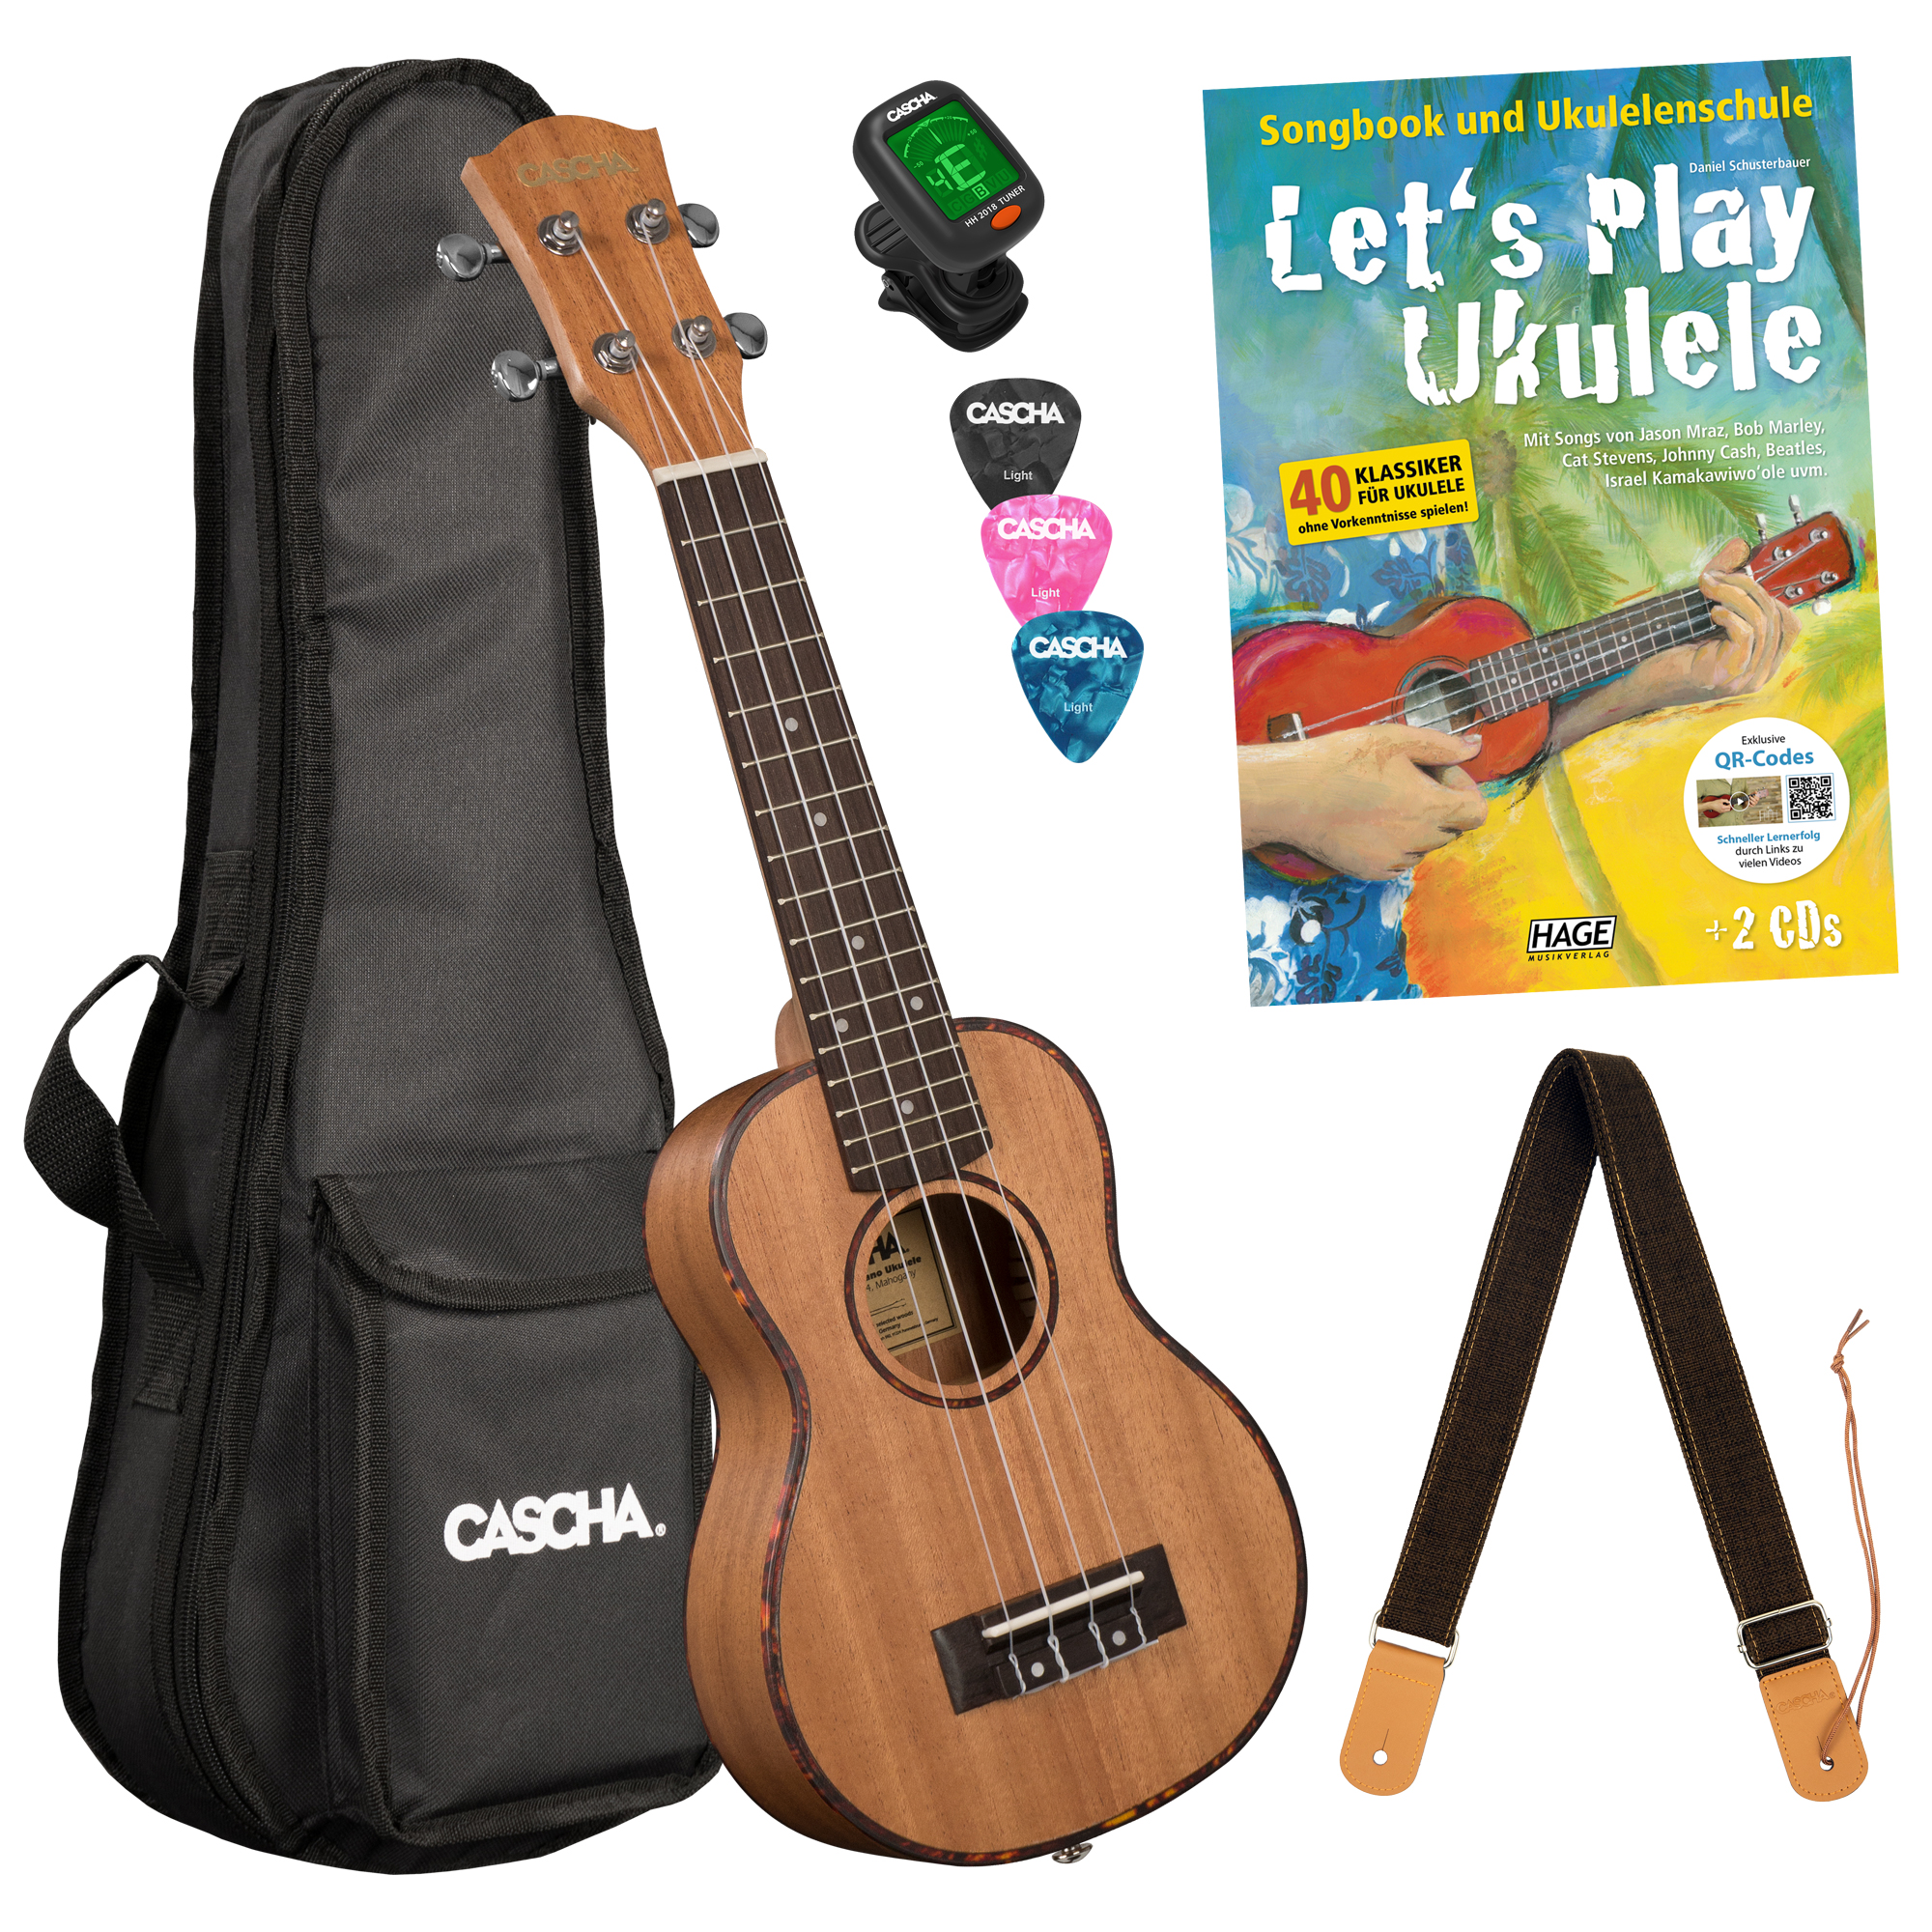 Let's Play Ukulele Einsteiger Set Sopran Bilder 1